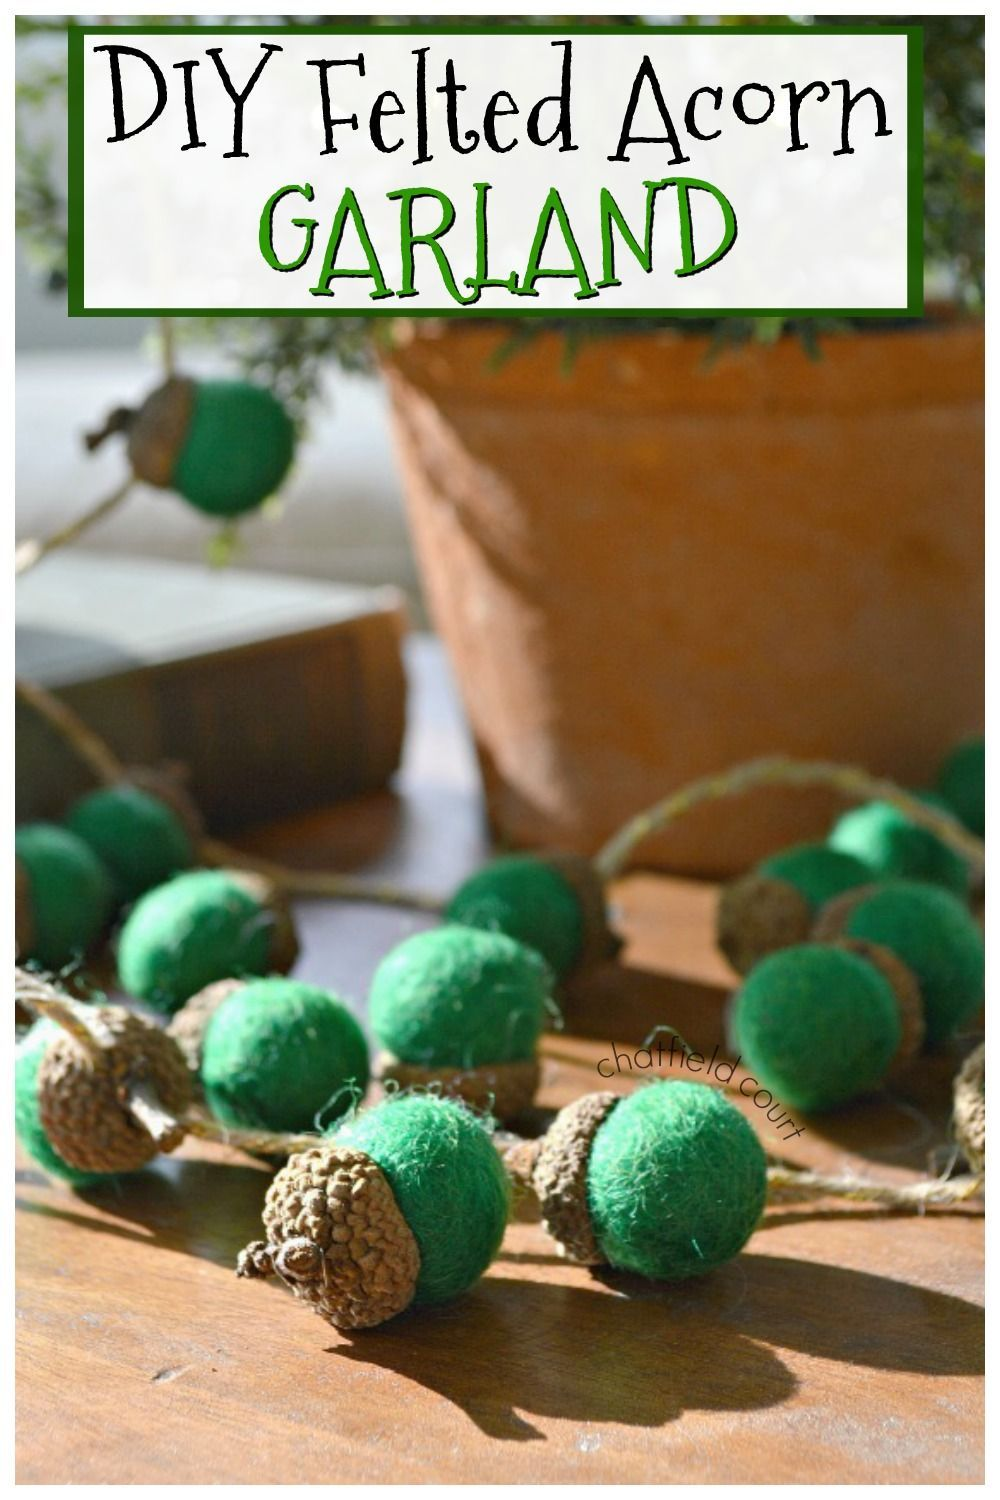 How to make DIY felted acorn garland to add to your holiday decor. Such an easy, and thrifty, Christmas craft using acorns found in the yard and felted wool balls.